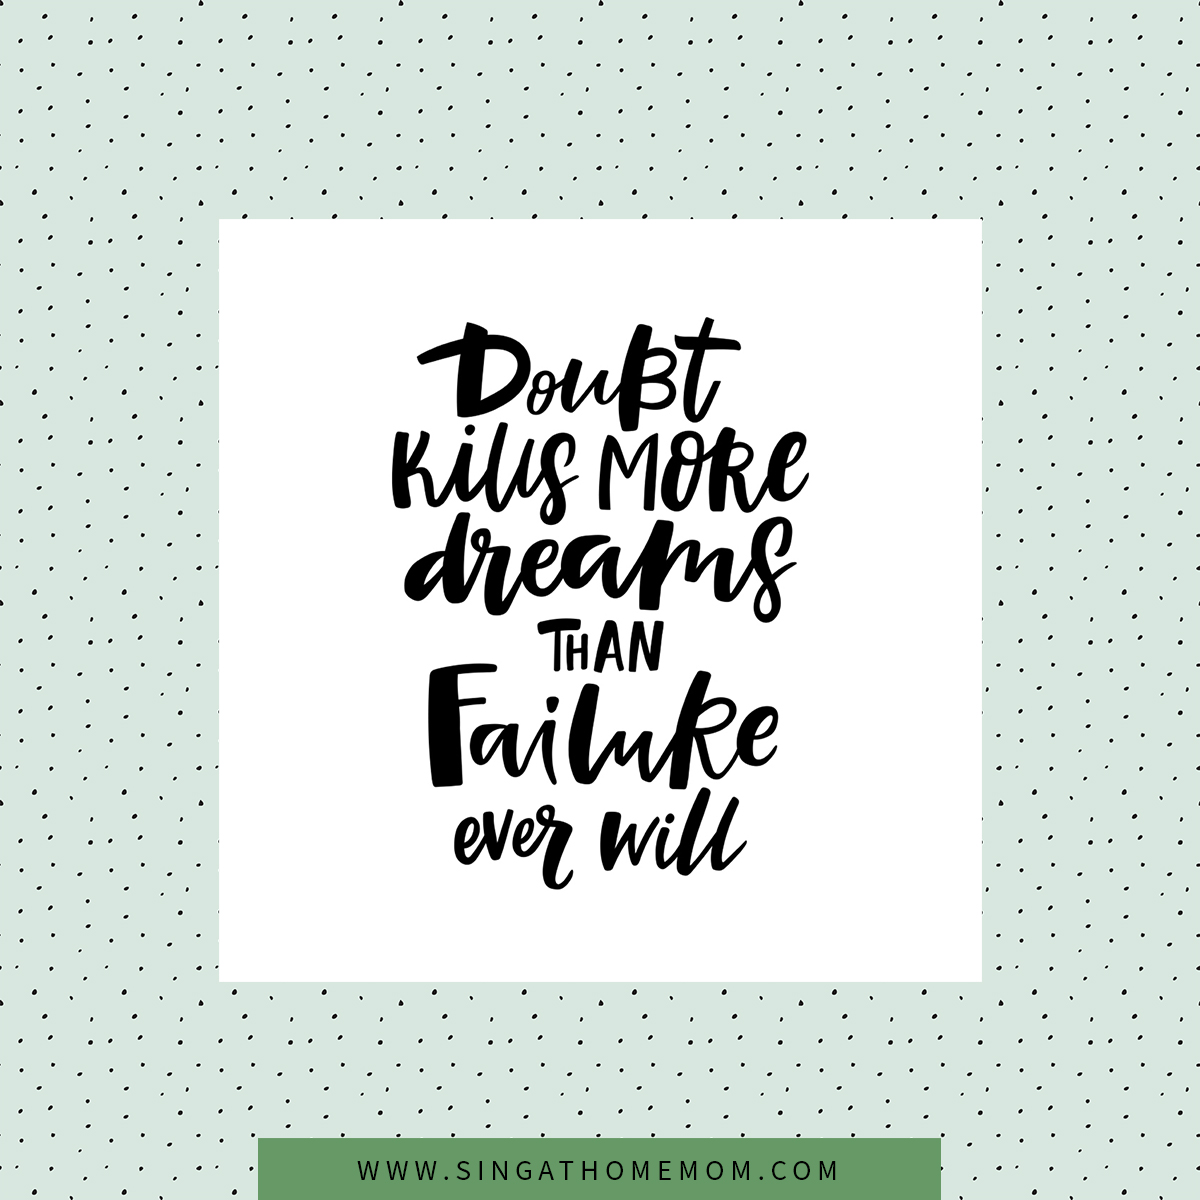 This is so true. Don't give up. If you still have this dream, as I do, don't ever give up. #singathomemom #broadway pic.twitter.com/CJhtfup2FD